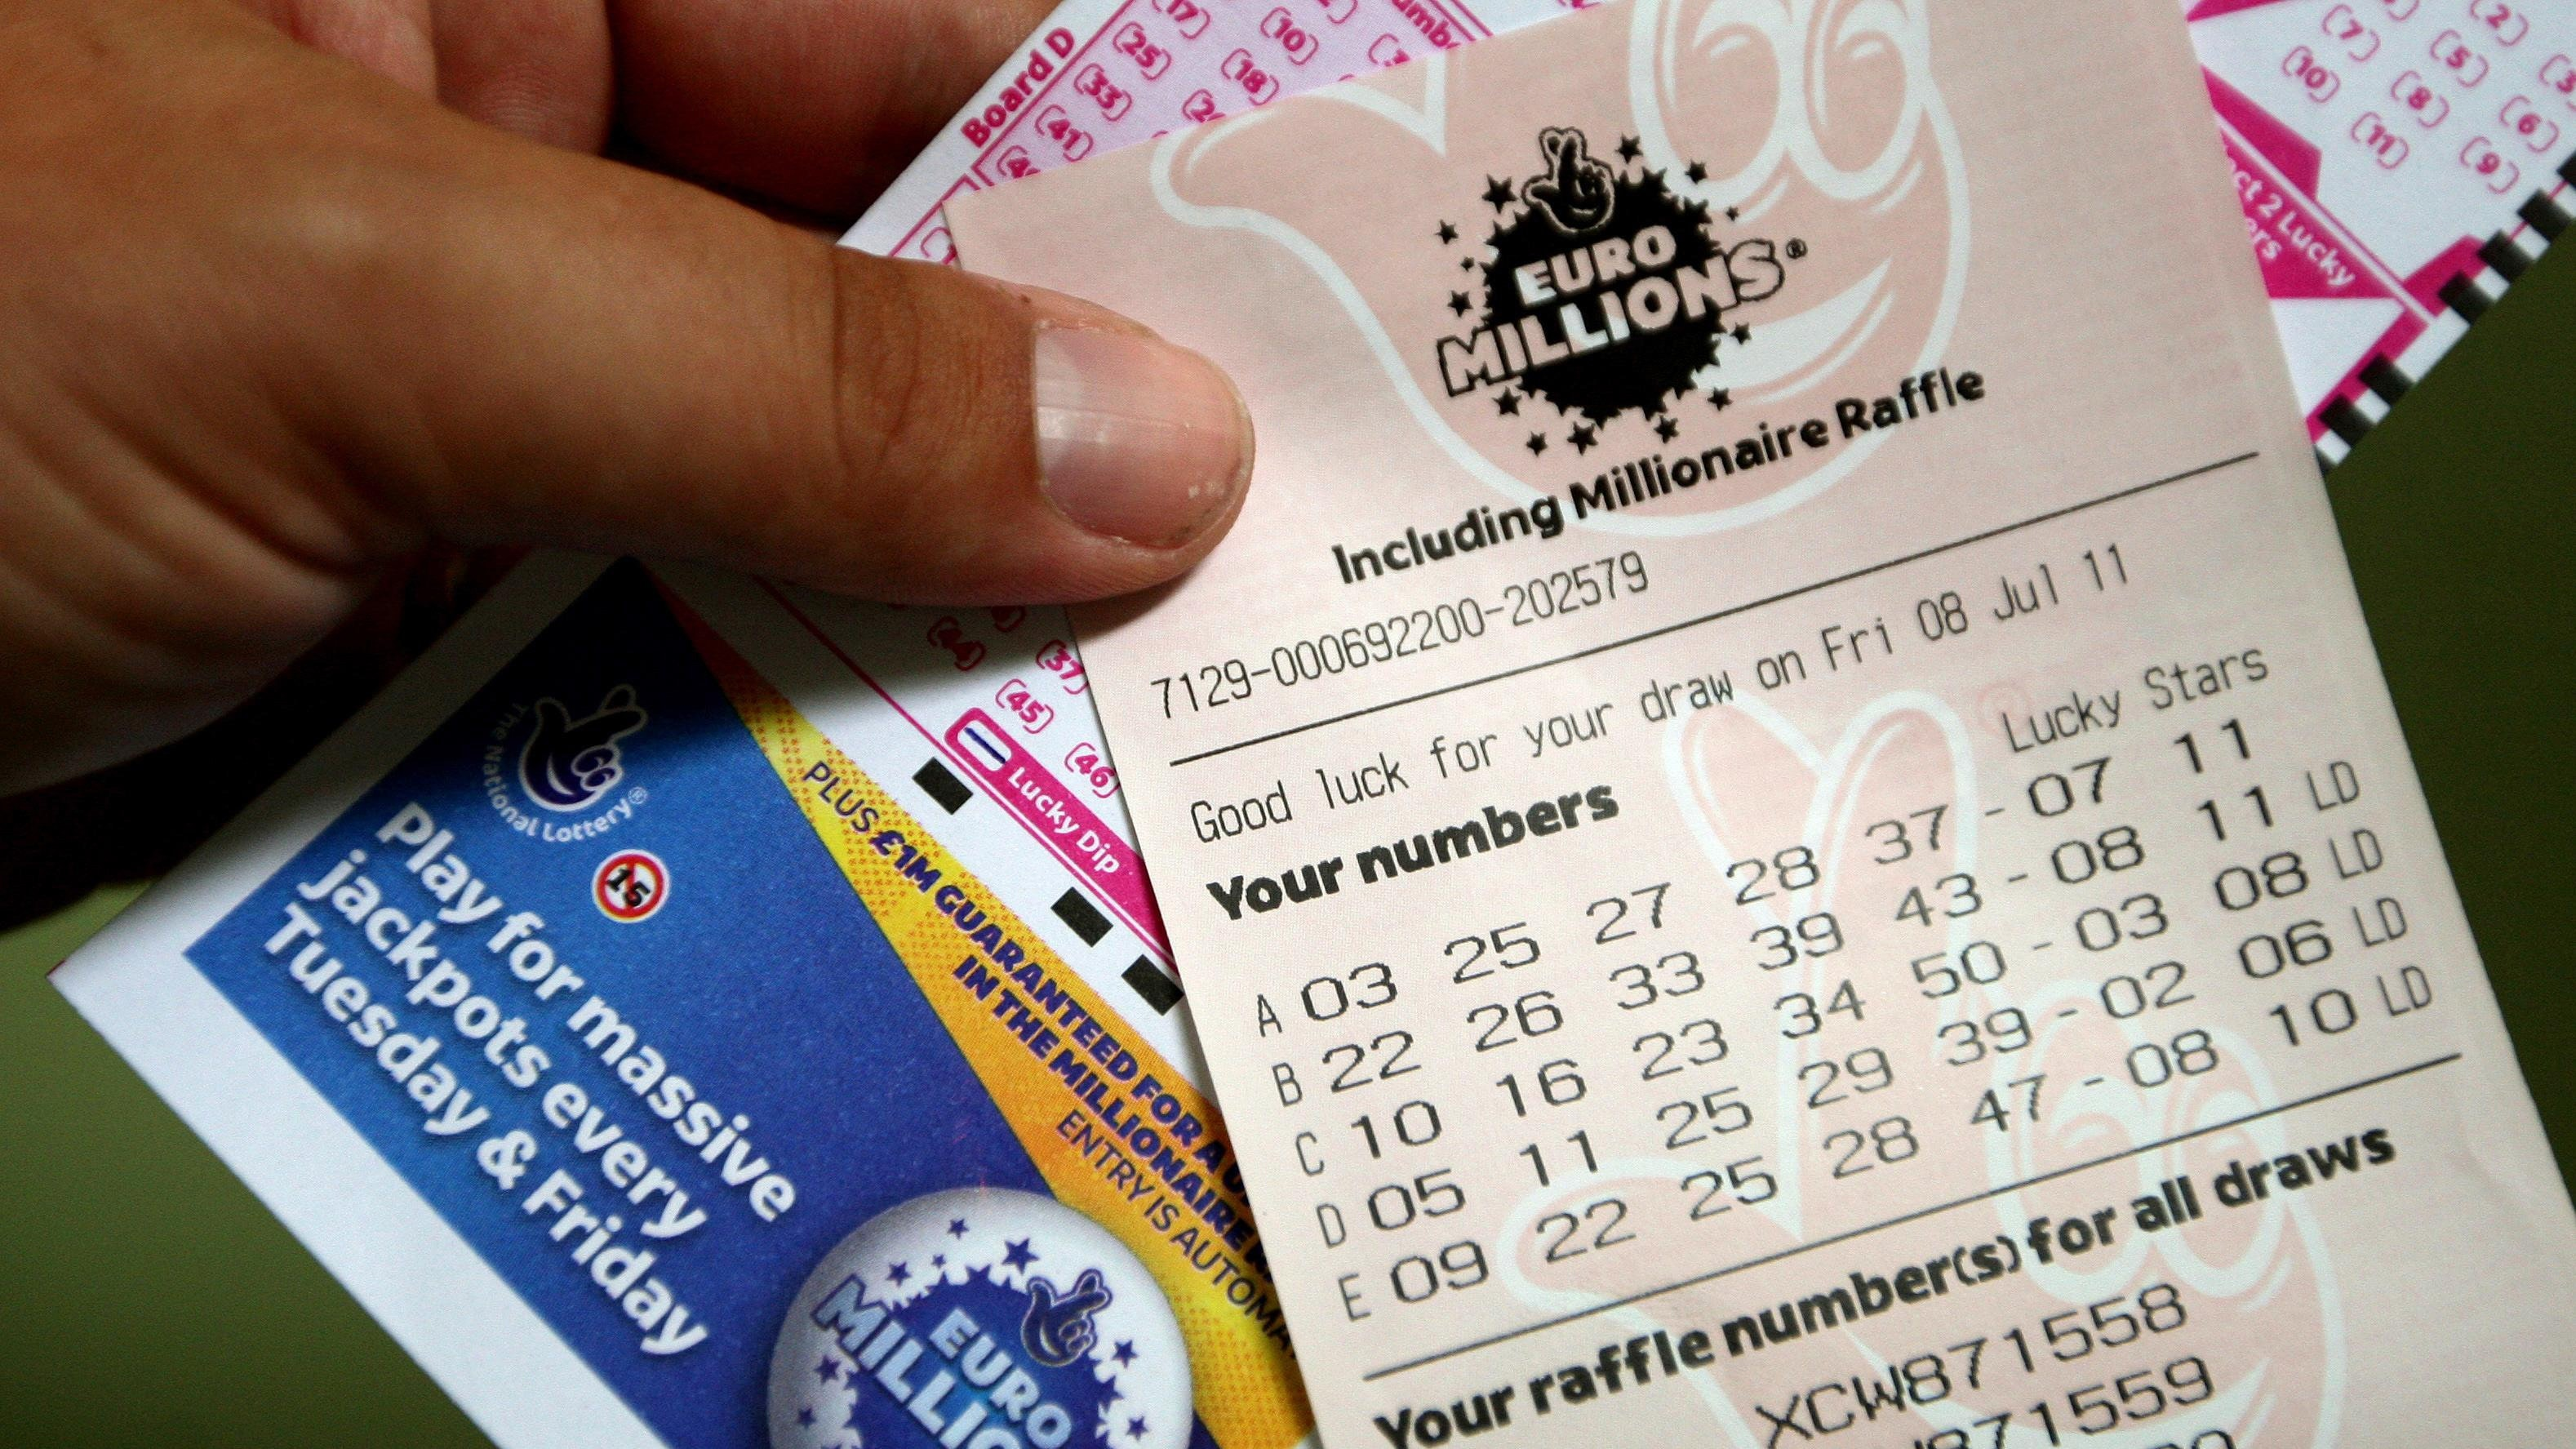 Irish ticket holder scoops €175m EuroMillions jackpot